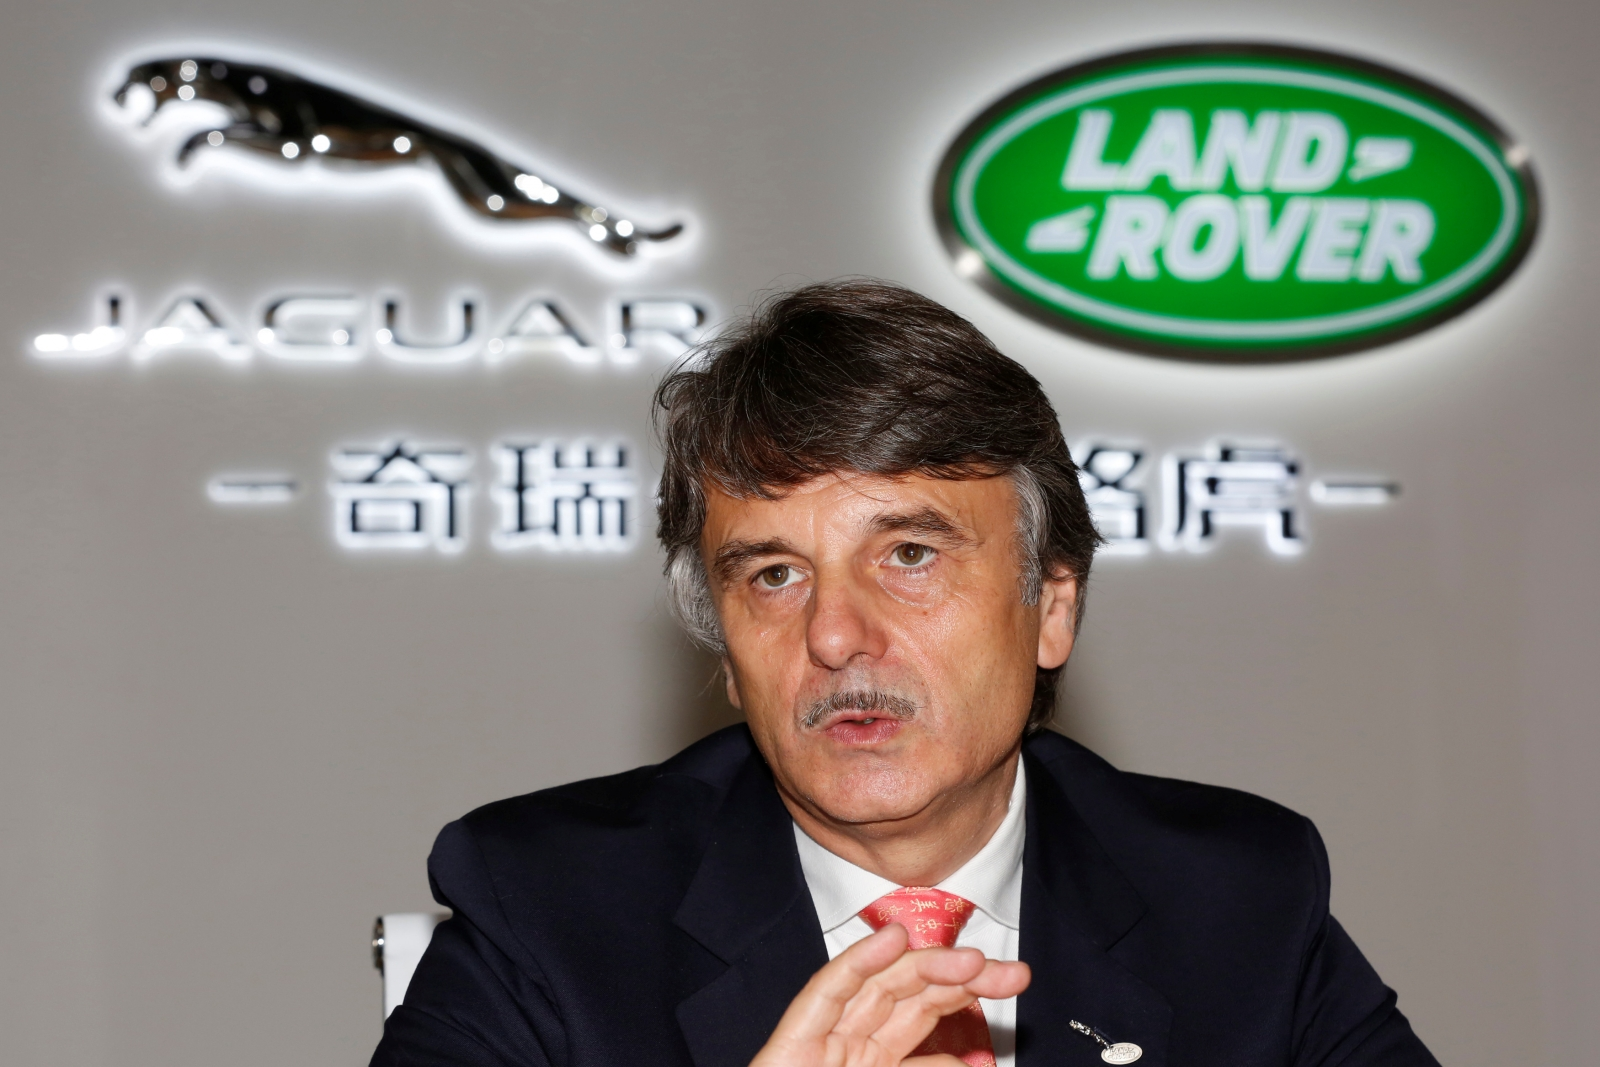 JLR head Ralf Speth among those being considered for role of Tata Group chairman – report